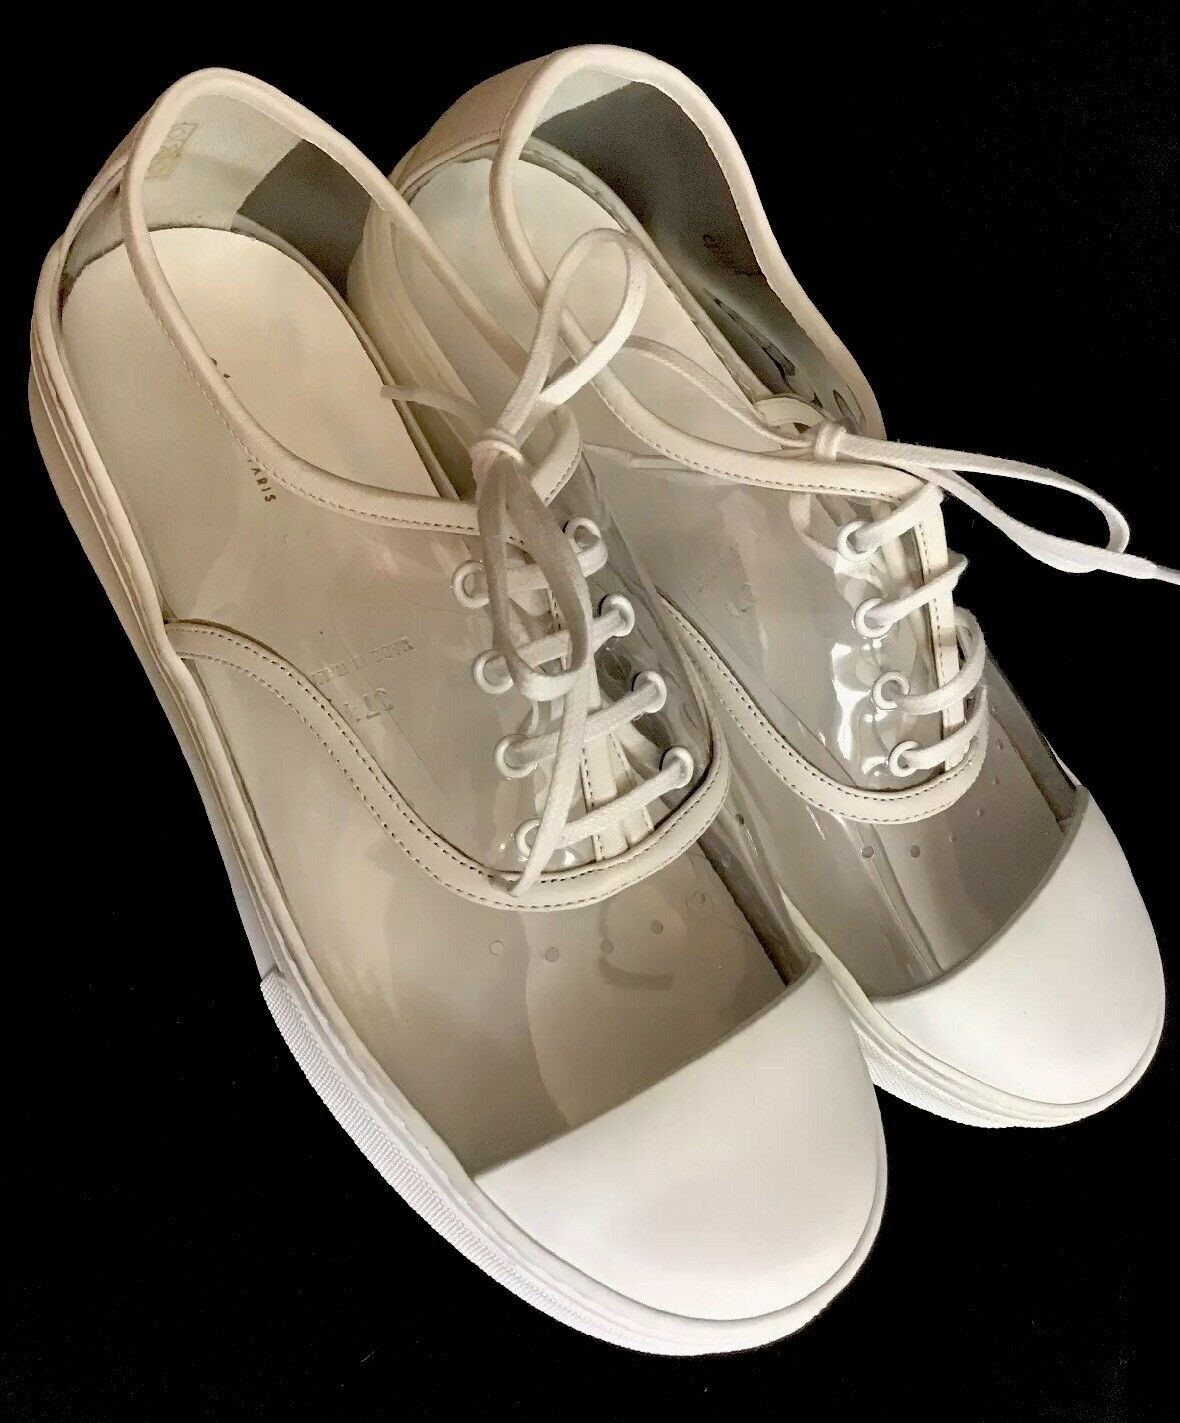 Celine Clear Weiß Pvc Turnschuhe Lther Cap Toe  Laces Thick Rubber Sole NEW 37 1 2